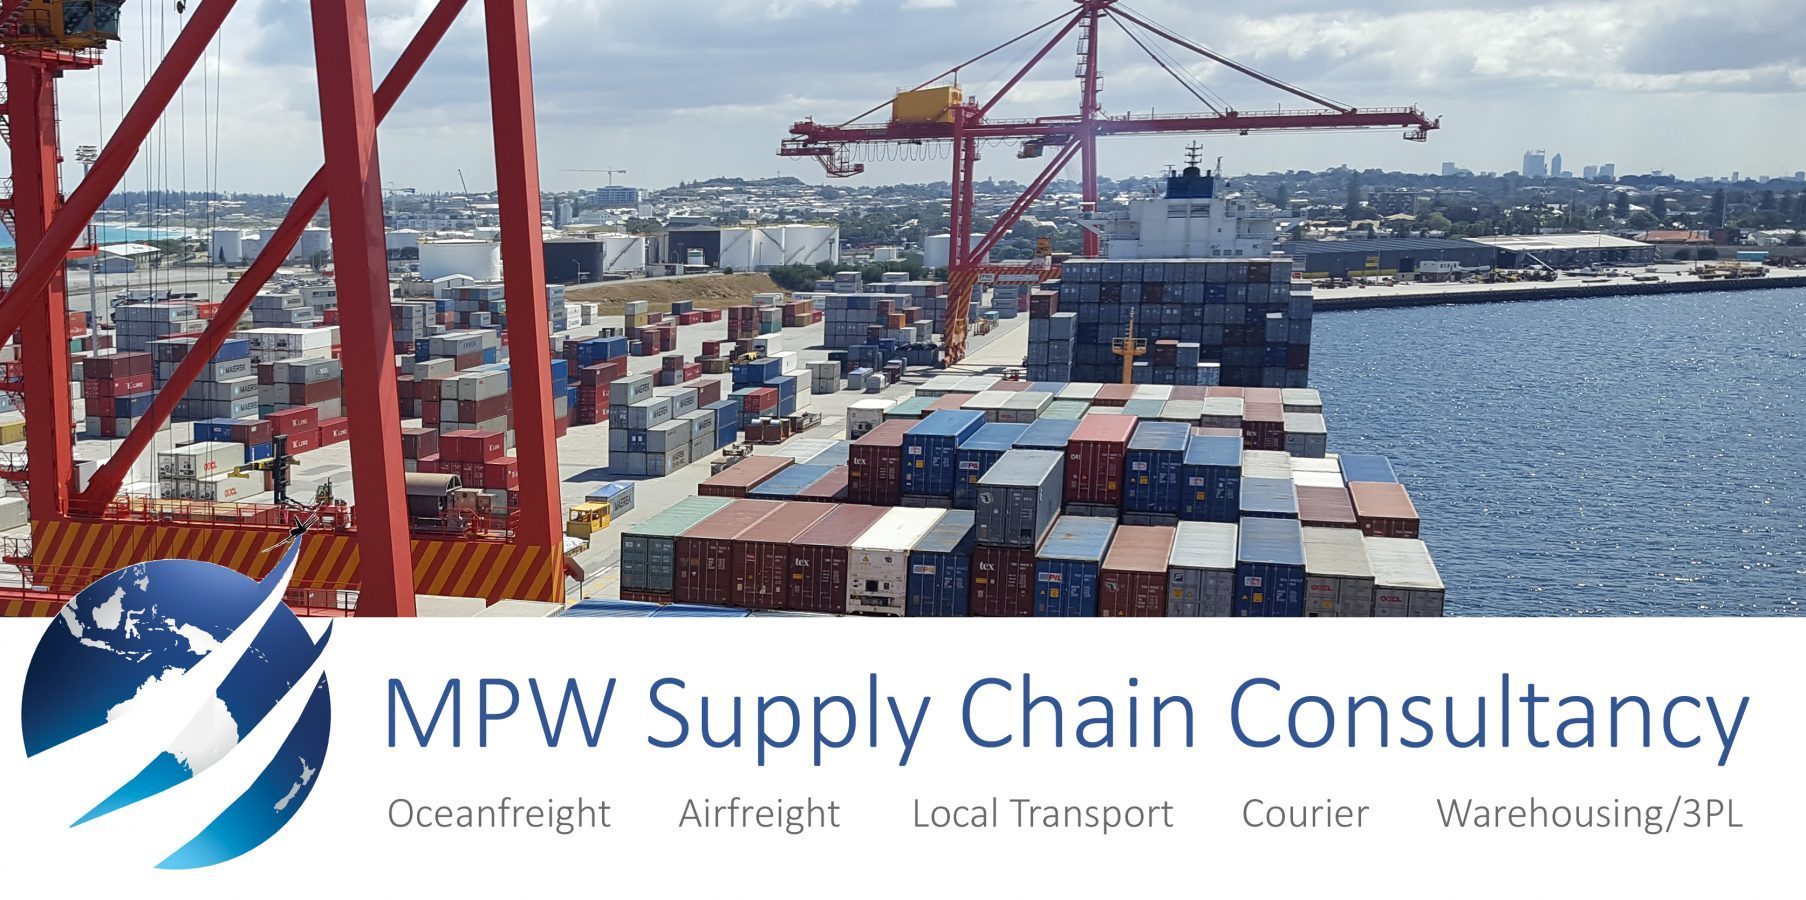 MPW Supply Chain Consultancy